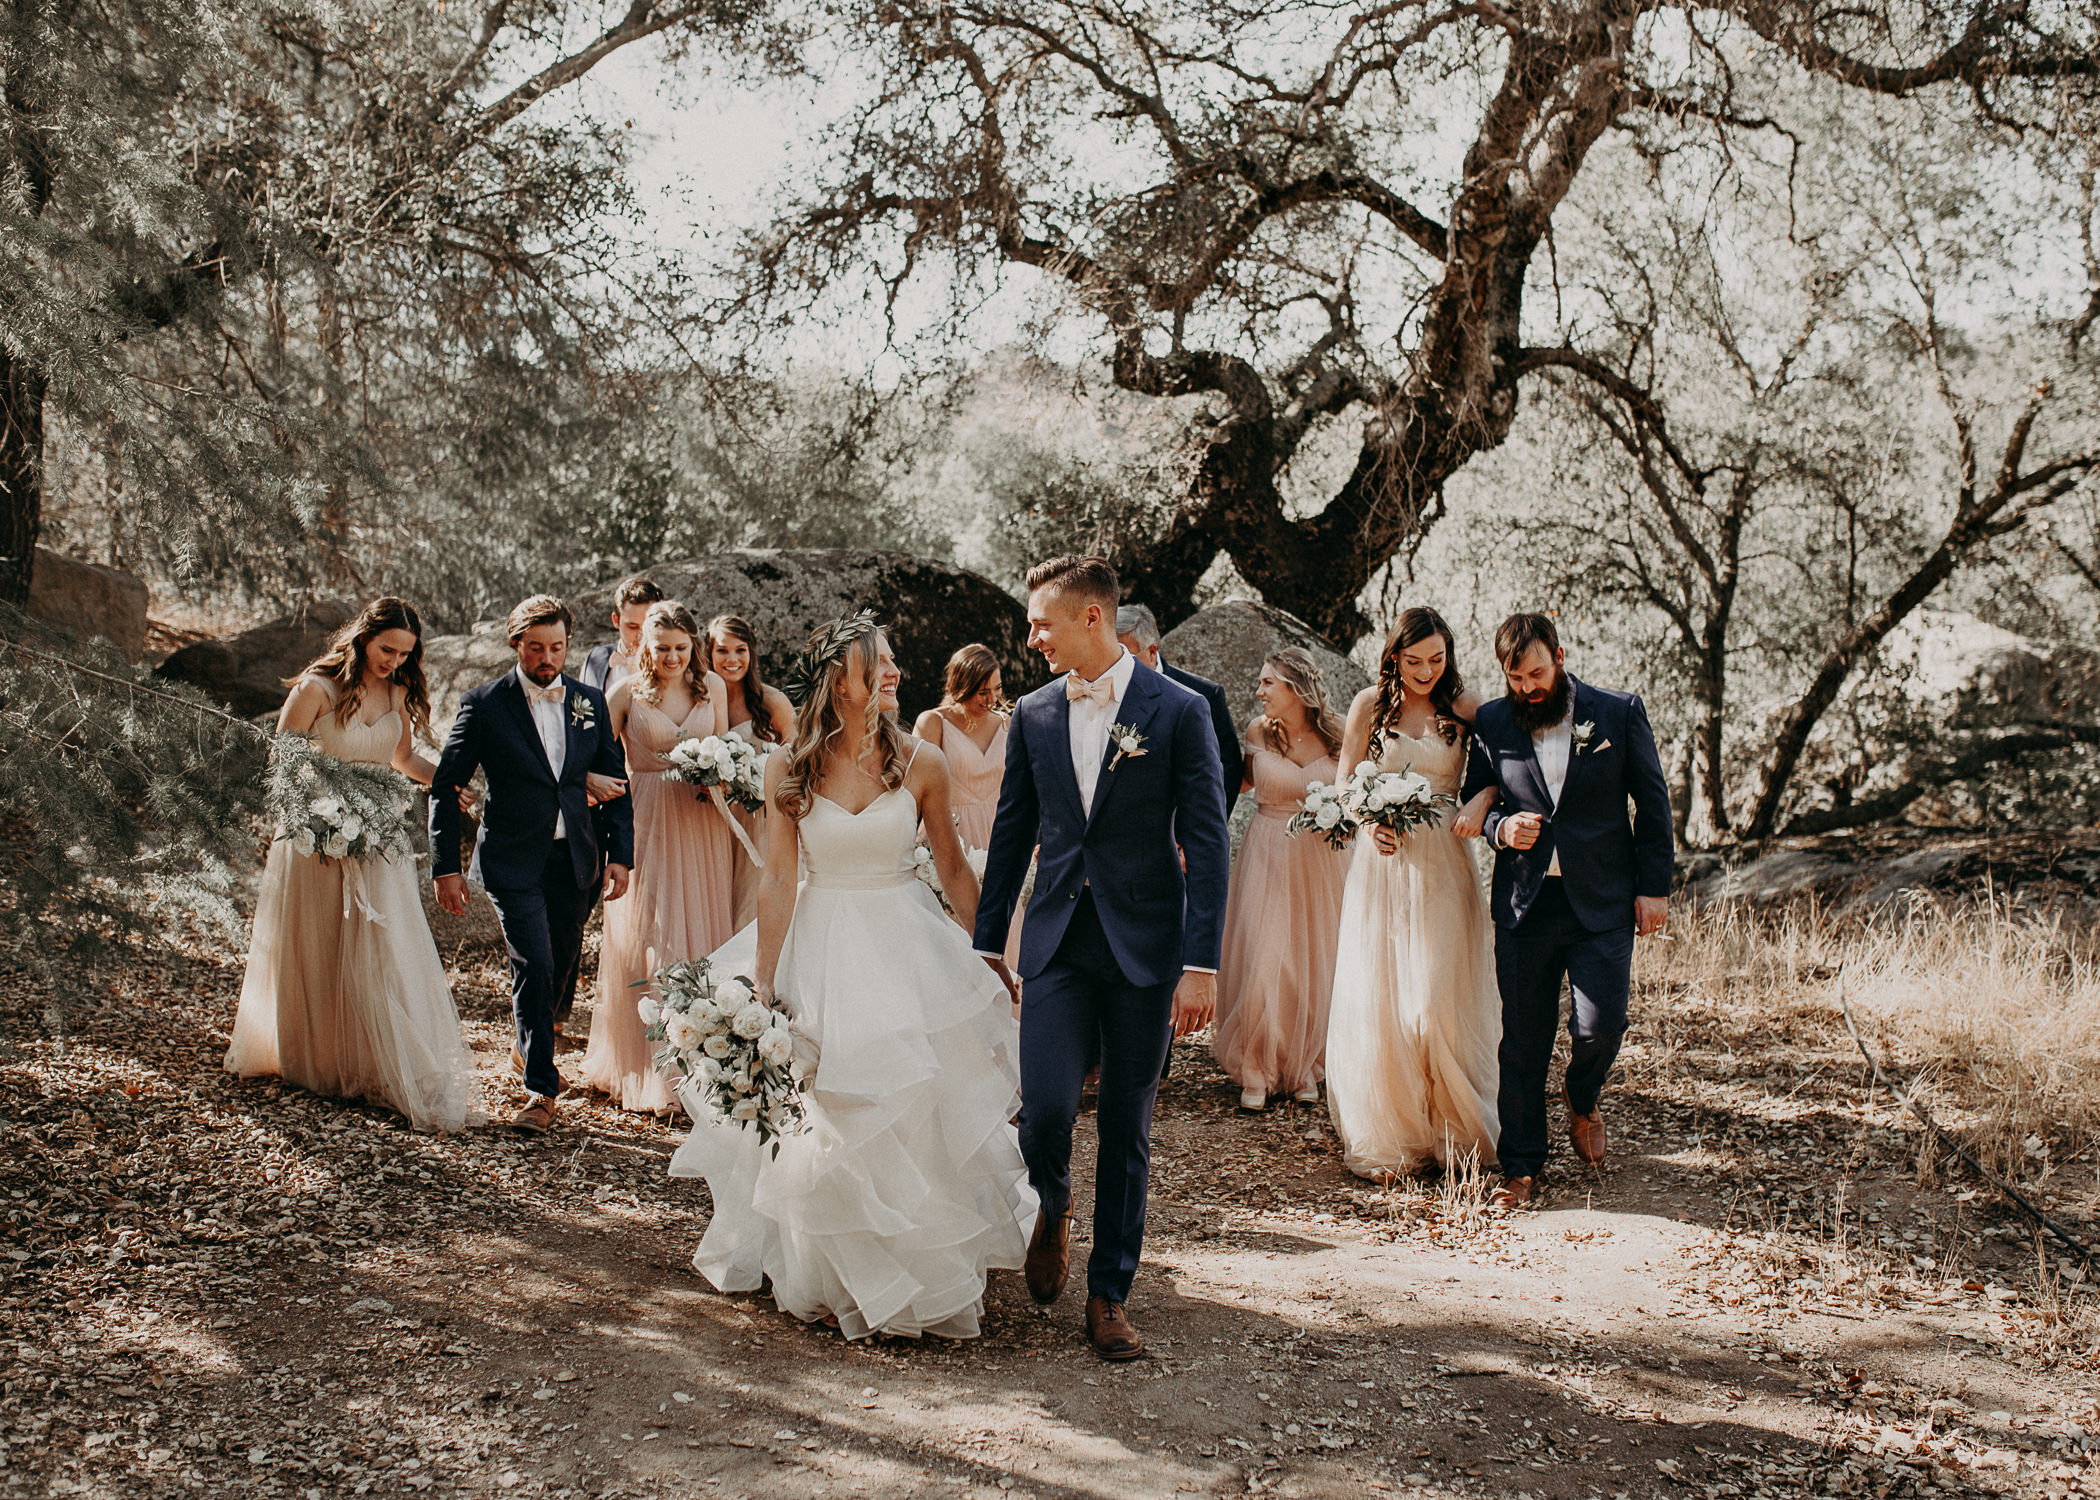 61 - Wedding details - Portraits : Bride and groom and bridal party : wedding venue San Diego - Milagro Winery Ramona - CA - Atlanta Wedding Photographer .jpg.JPG